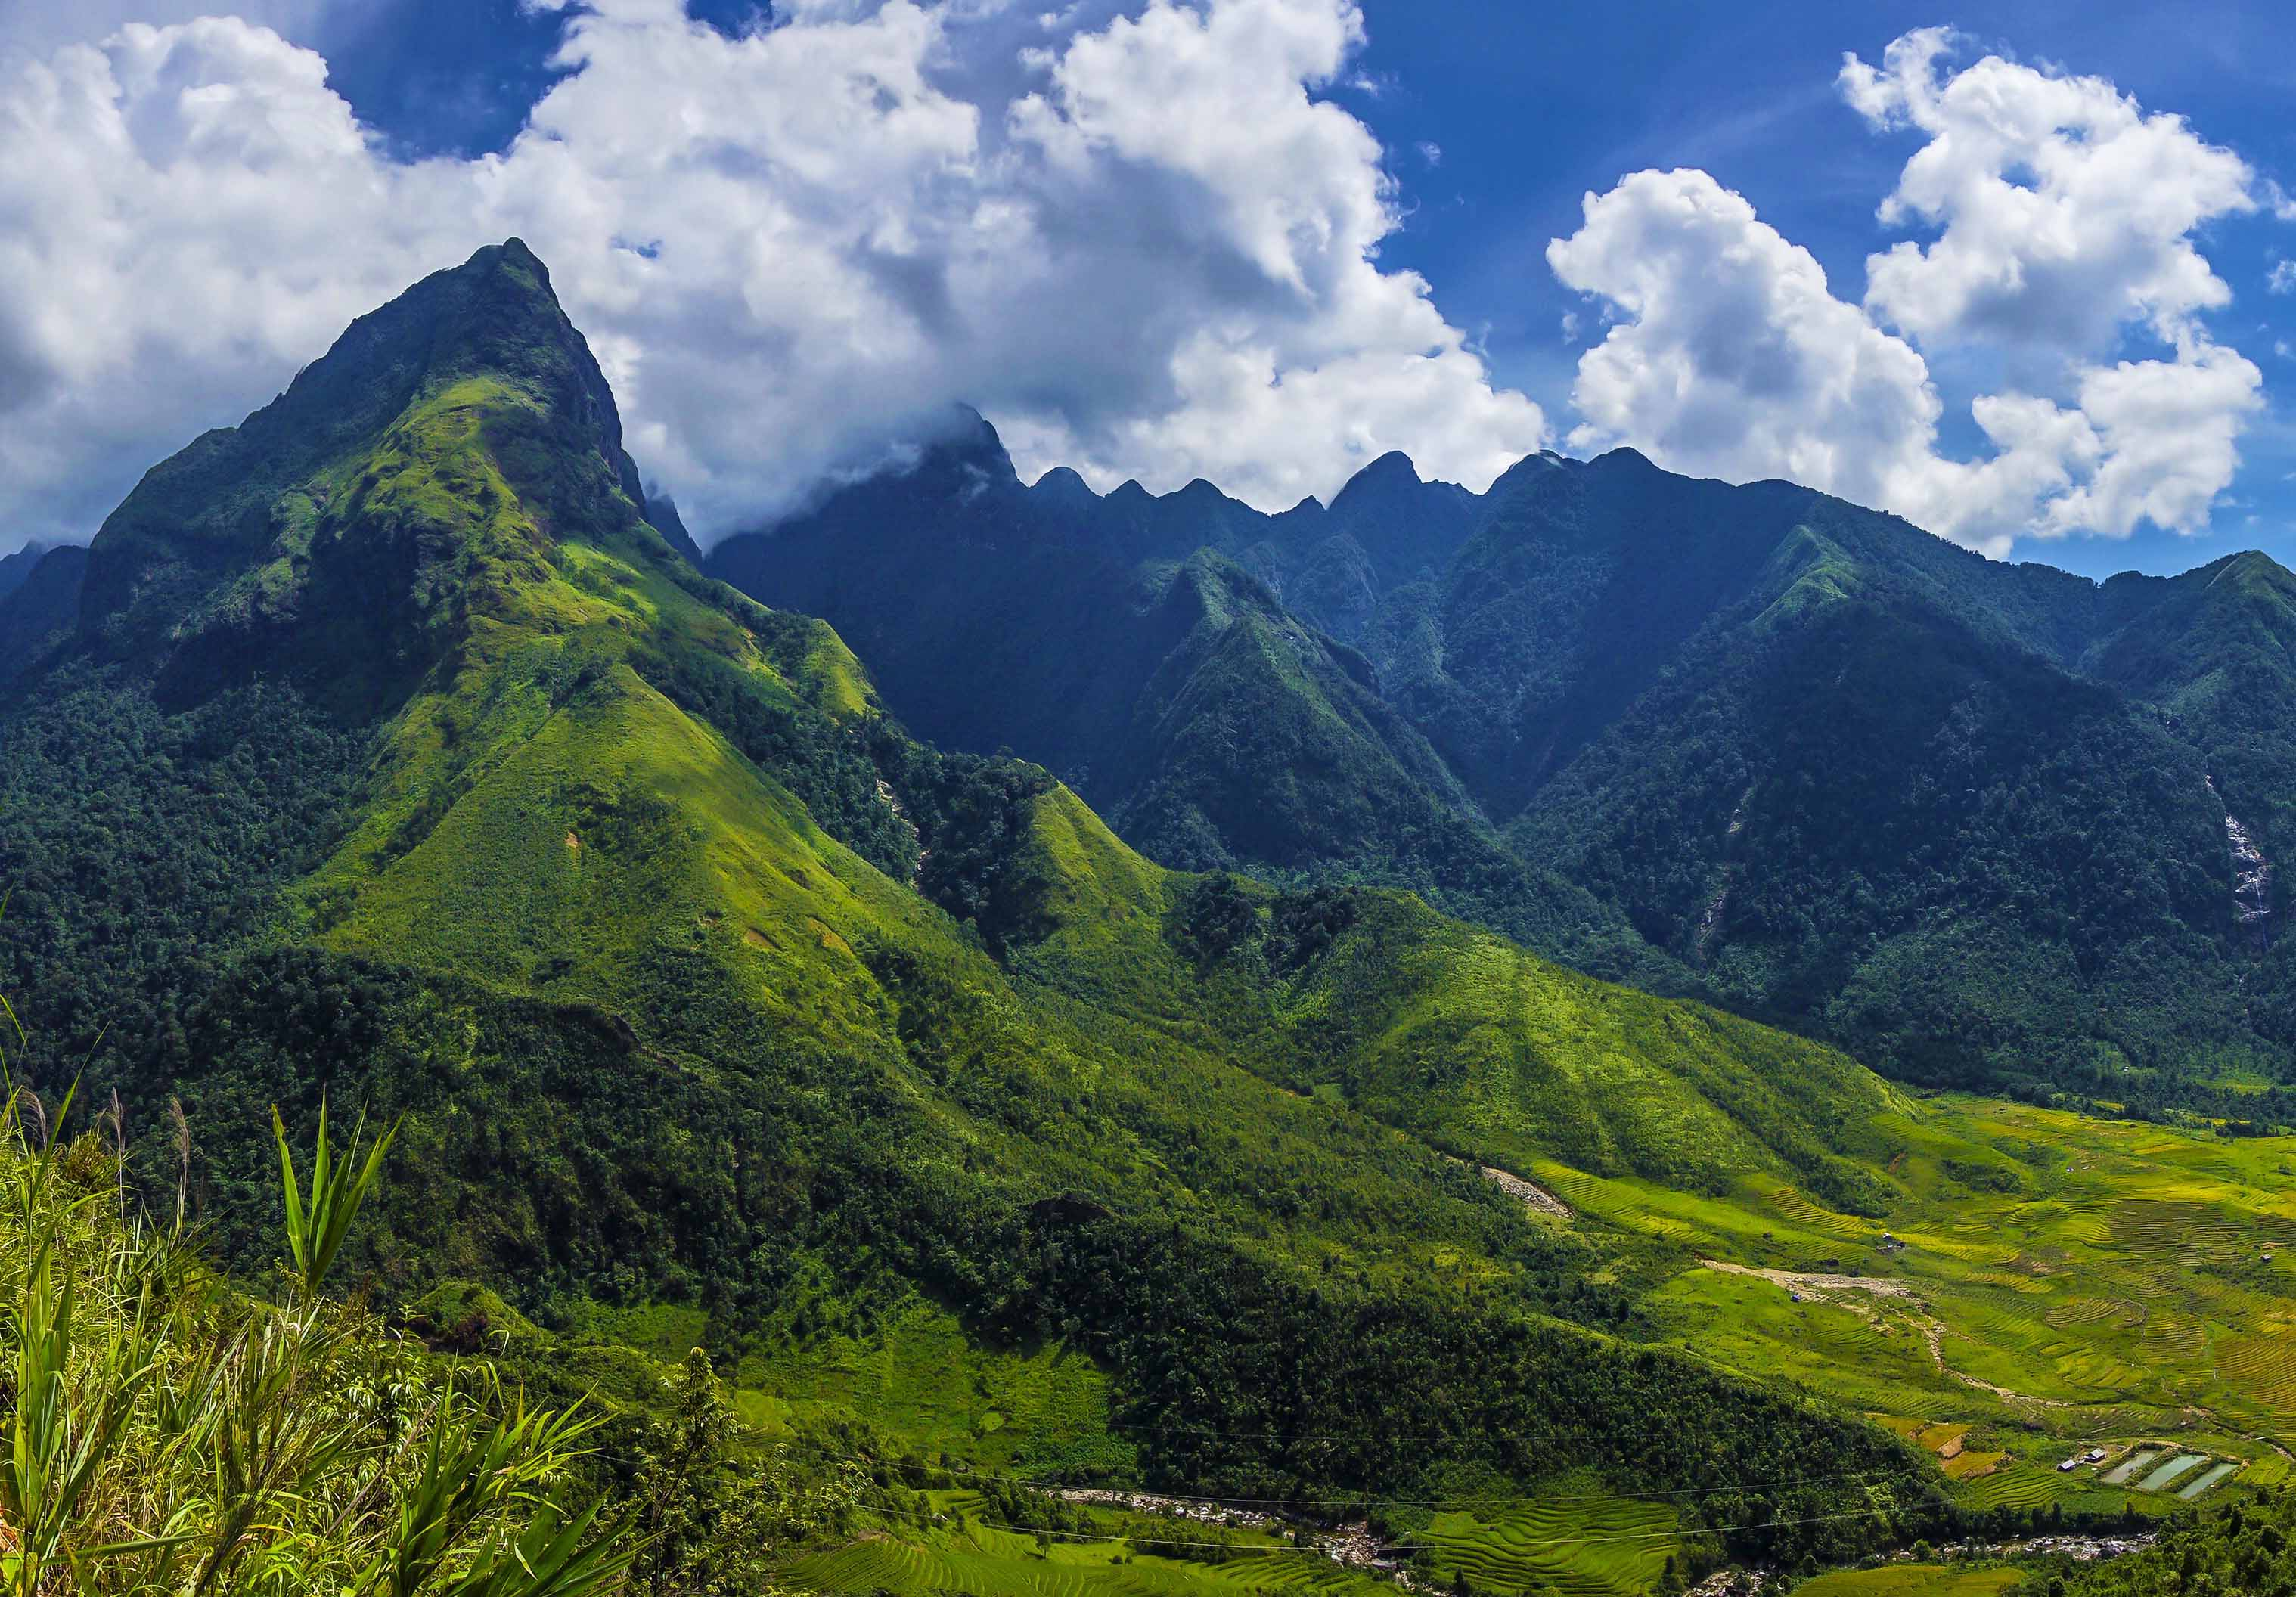 TREKKING MOUNT FANSIPAN – THE ROOF OF INDOCHINA